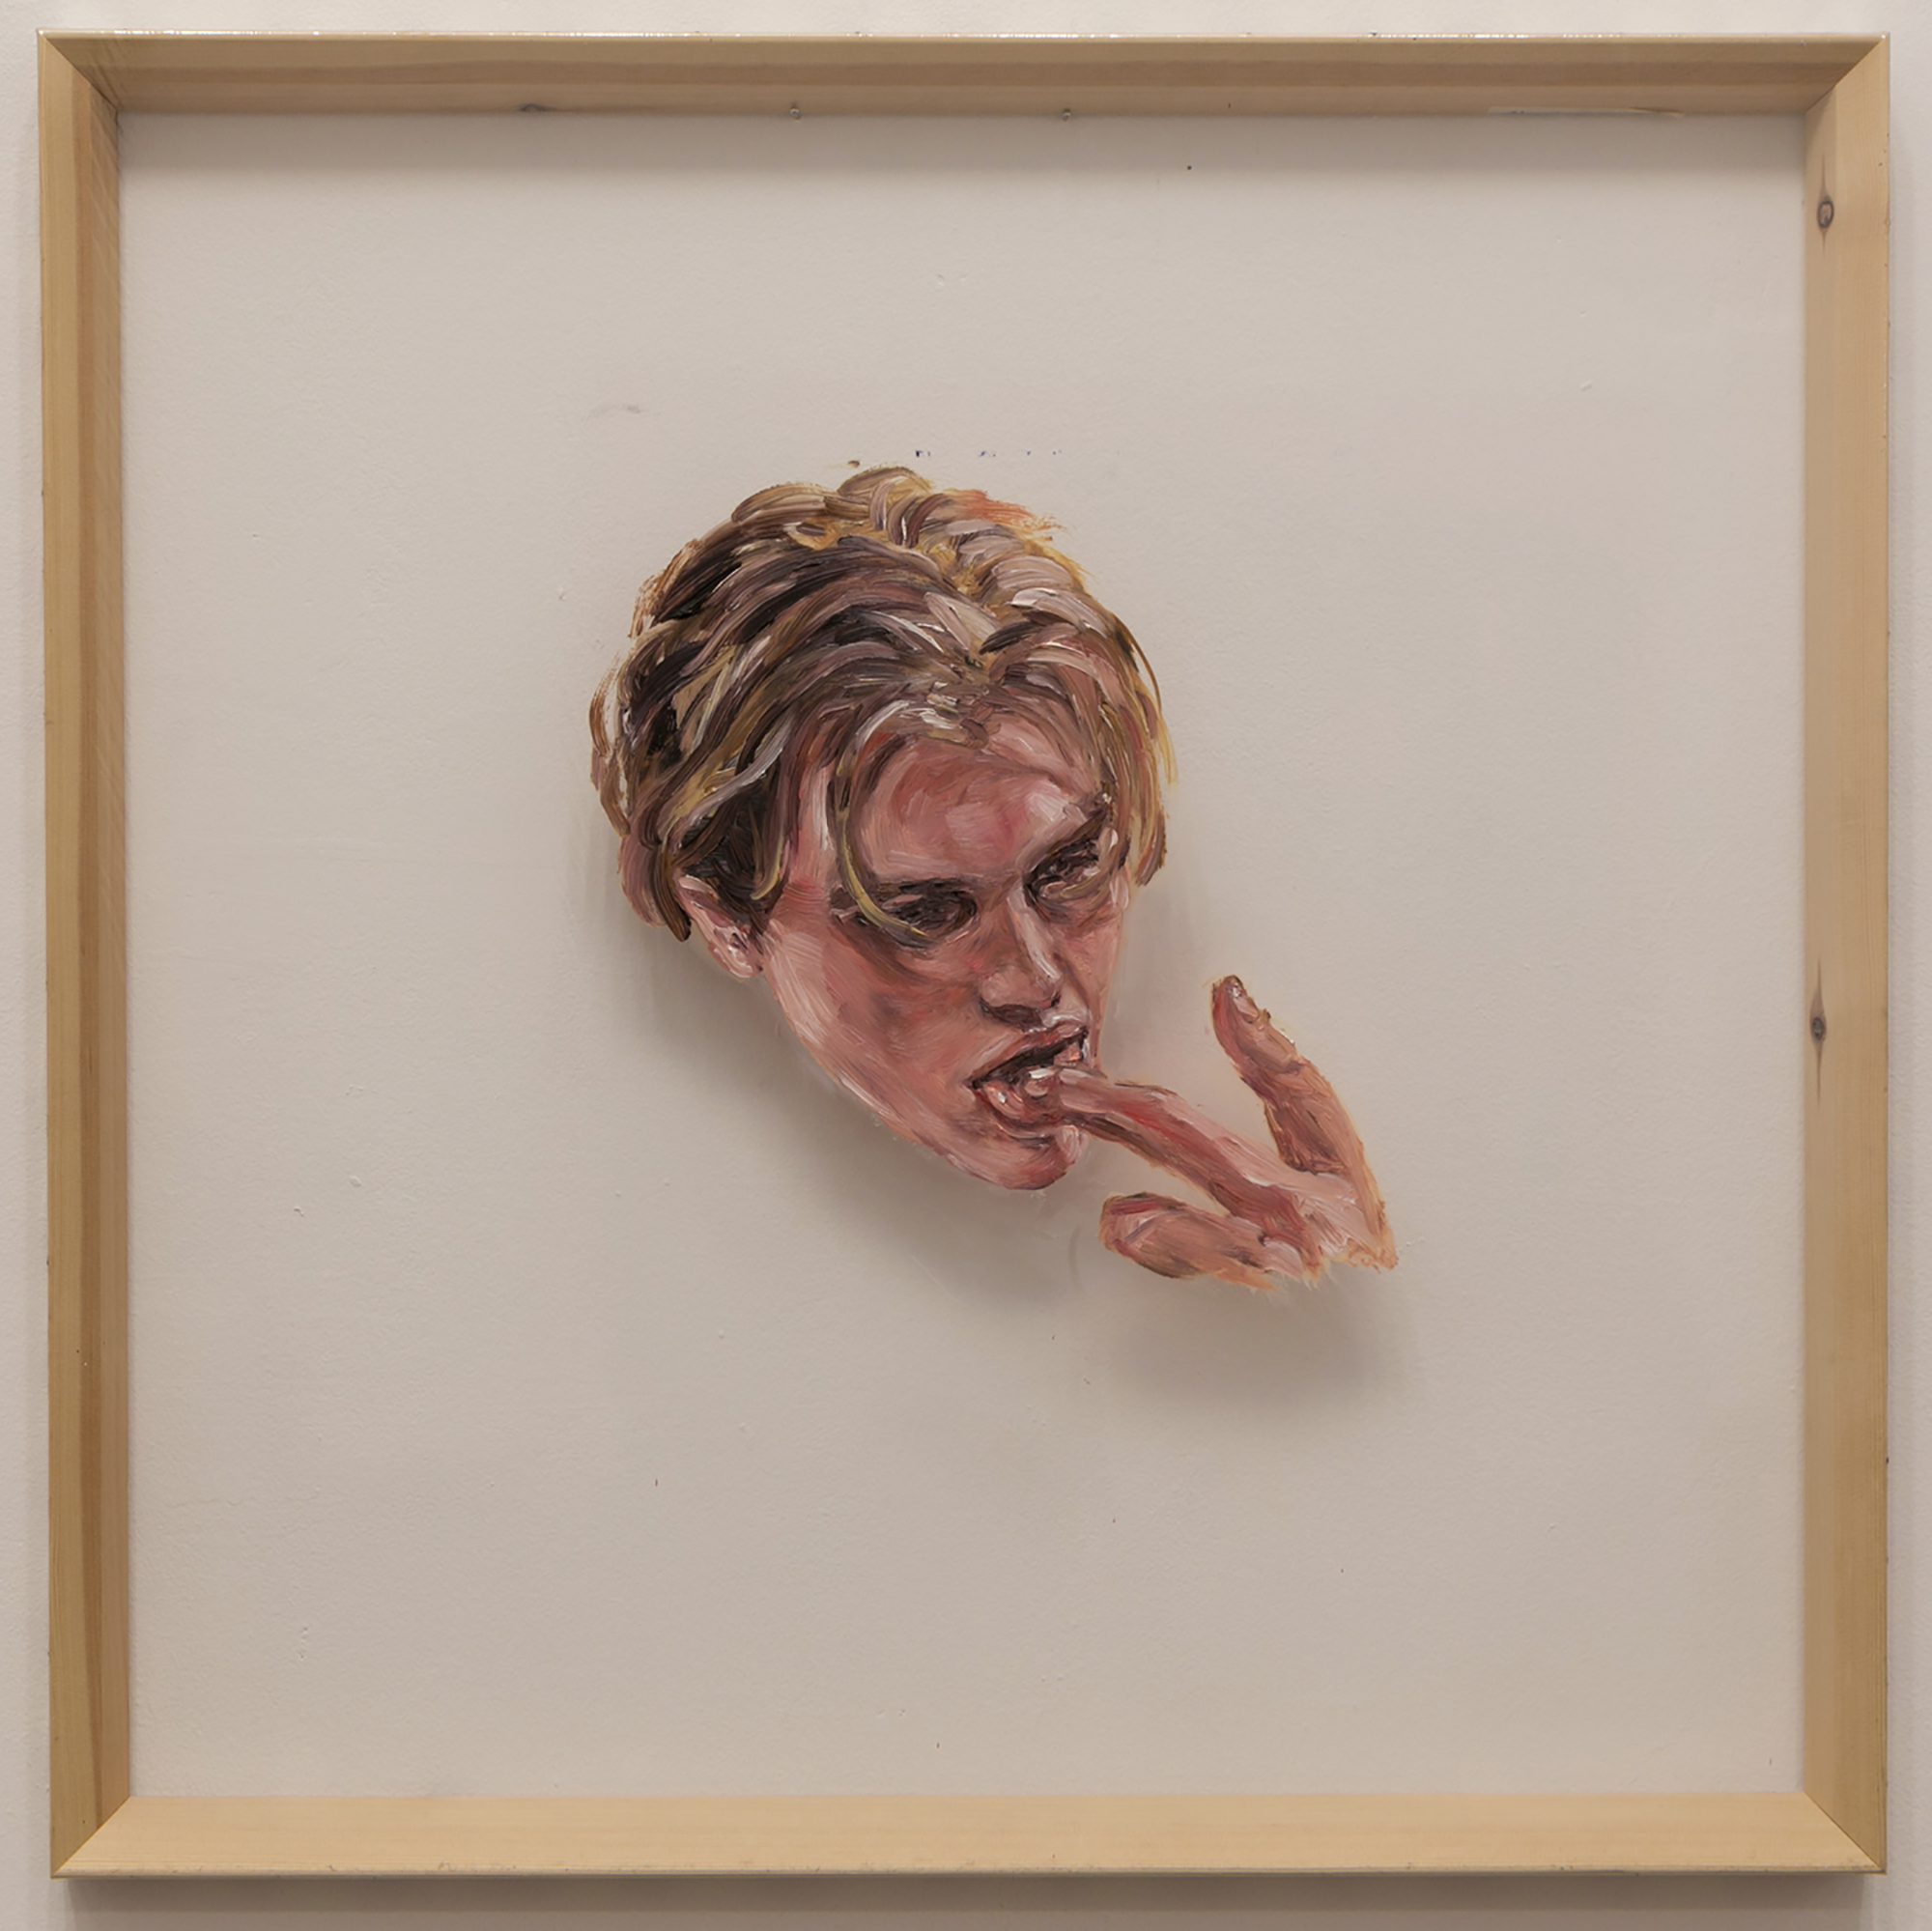 Catherine Trowbridge, I tried to explain licking the honey, Oil on vinyl, with printed photographs cut-out and pasted on sides of wooden stretcher bars, 75 x 75 x 4,  http://www.kit-trowbridge.com